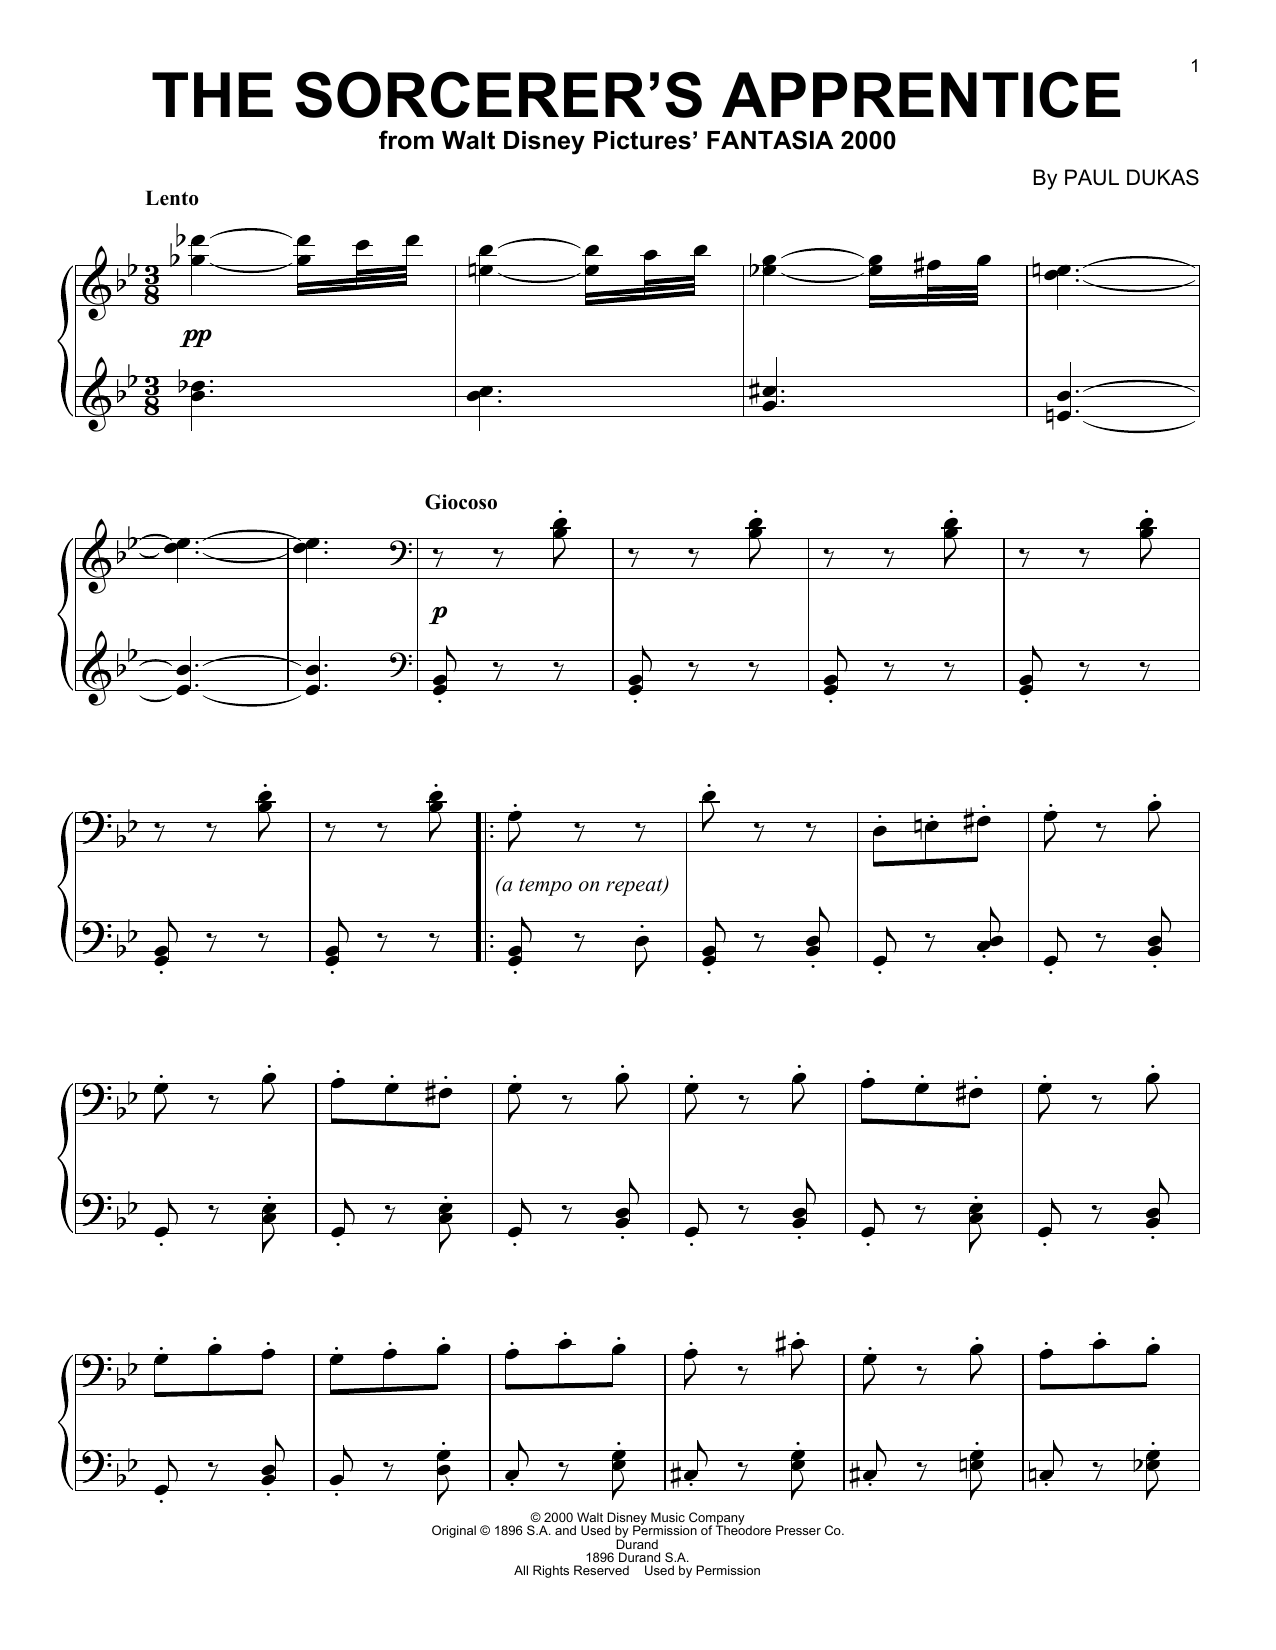 The Sorcerer's Apprentice sheet music for piano solo by Paul Dukas